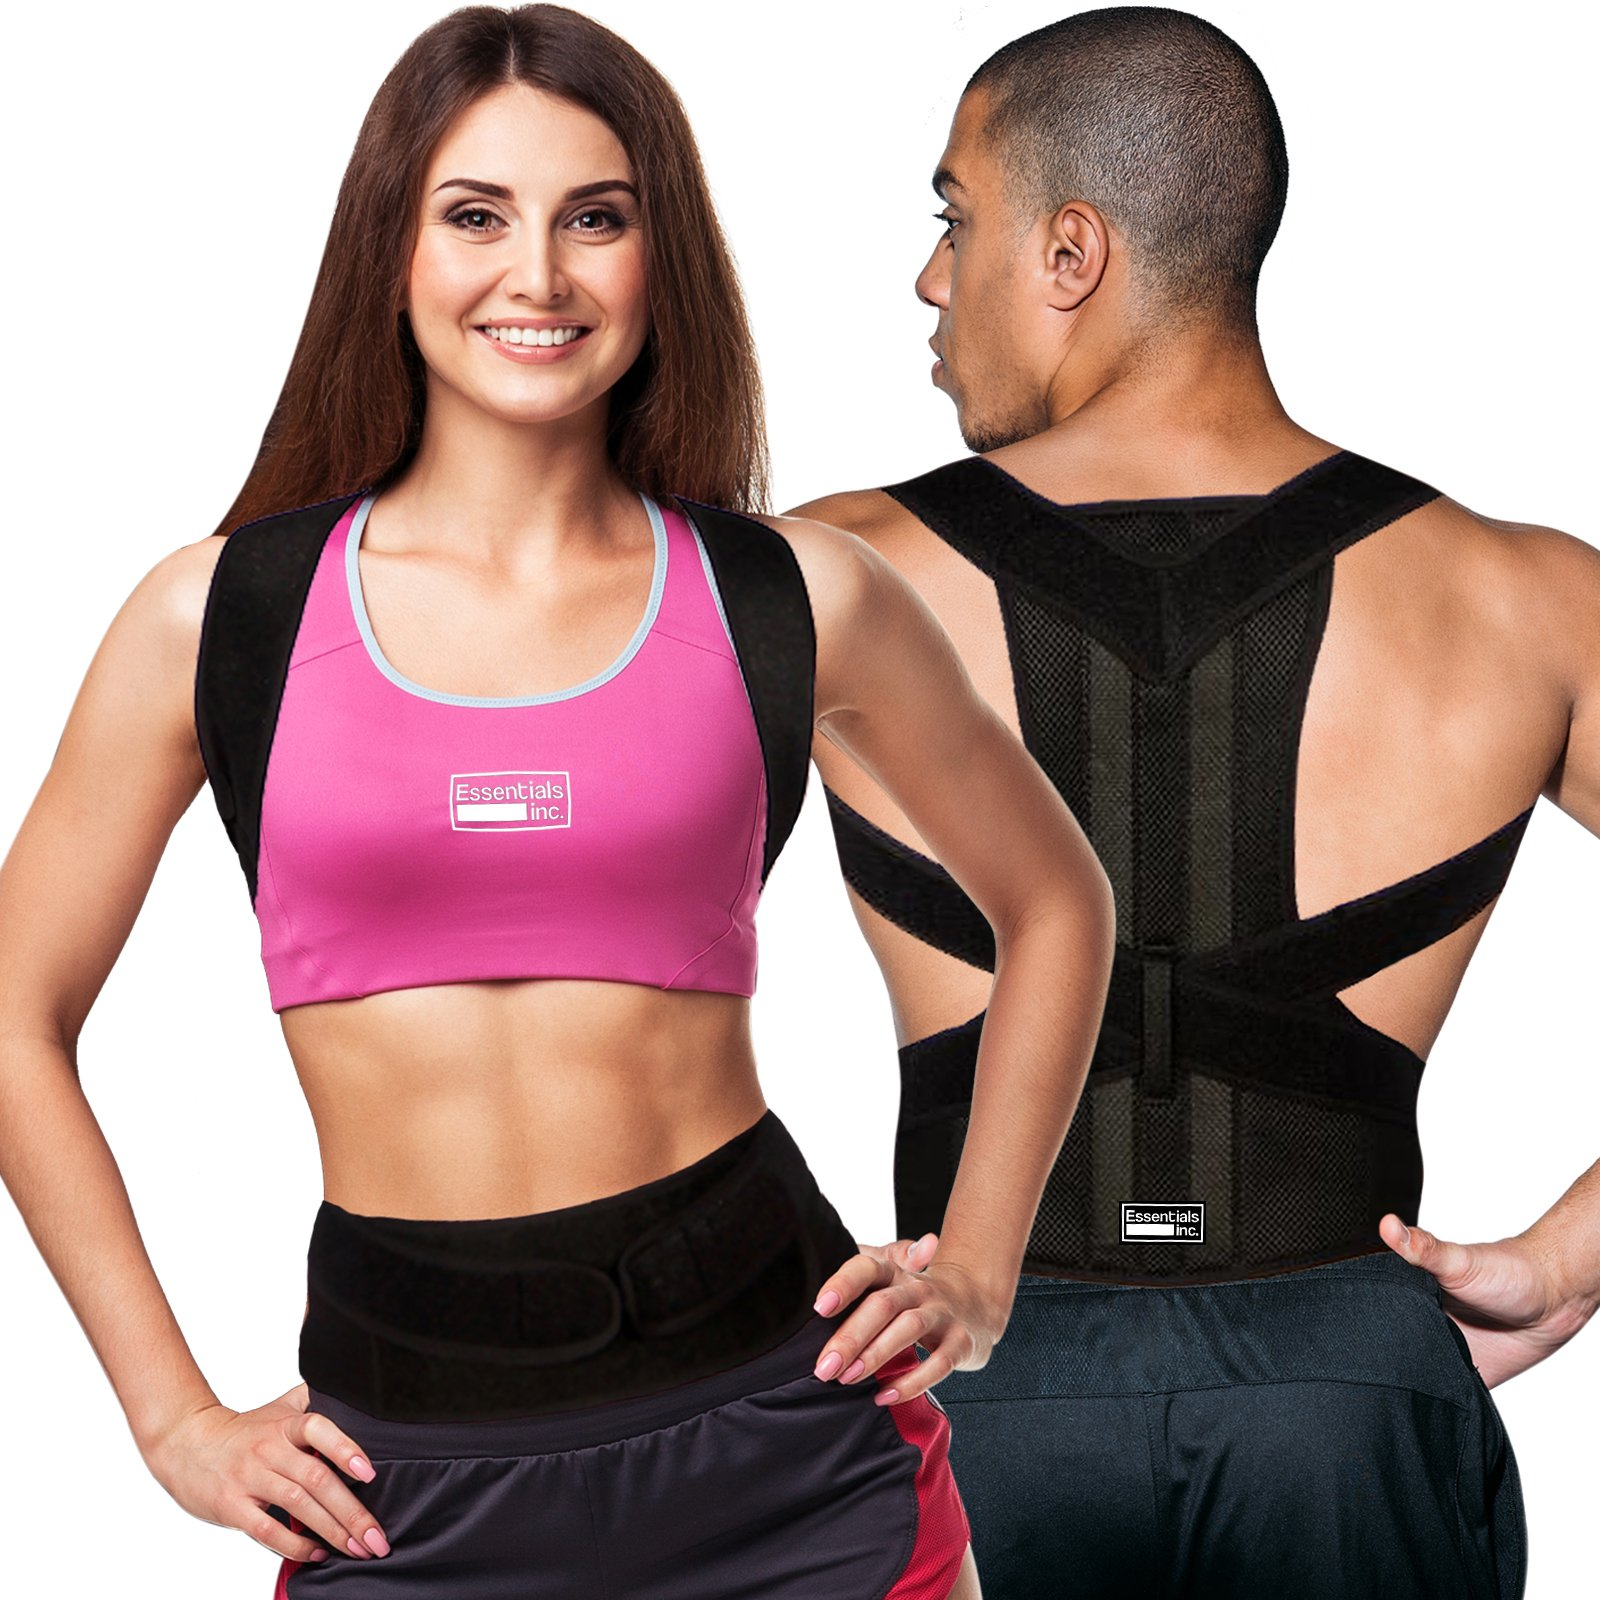 Posture Corrector for Women & Men – Back Brace & Shoulder Support Trainer for Pain Relief & Improve Bad Slouching Problems - Fully Adjustable Clavicle Medical Belt Straightener (Medium)